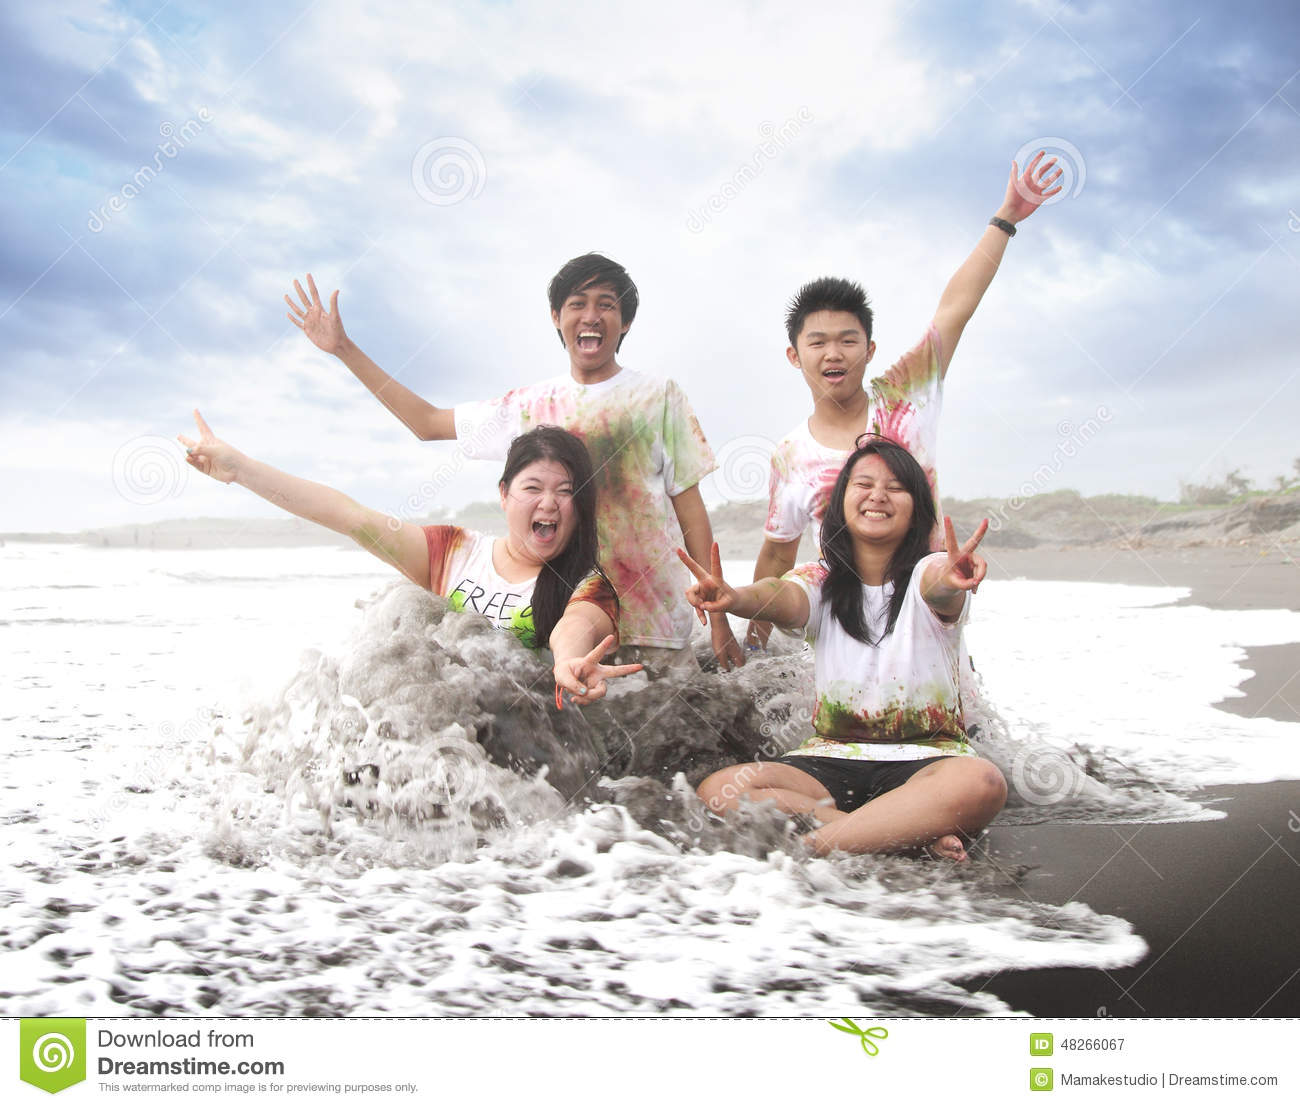 Happy young people in a beach in summer with slow motion and blurry concept